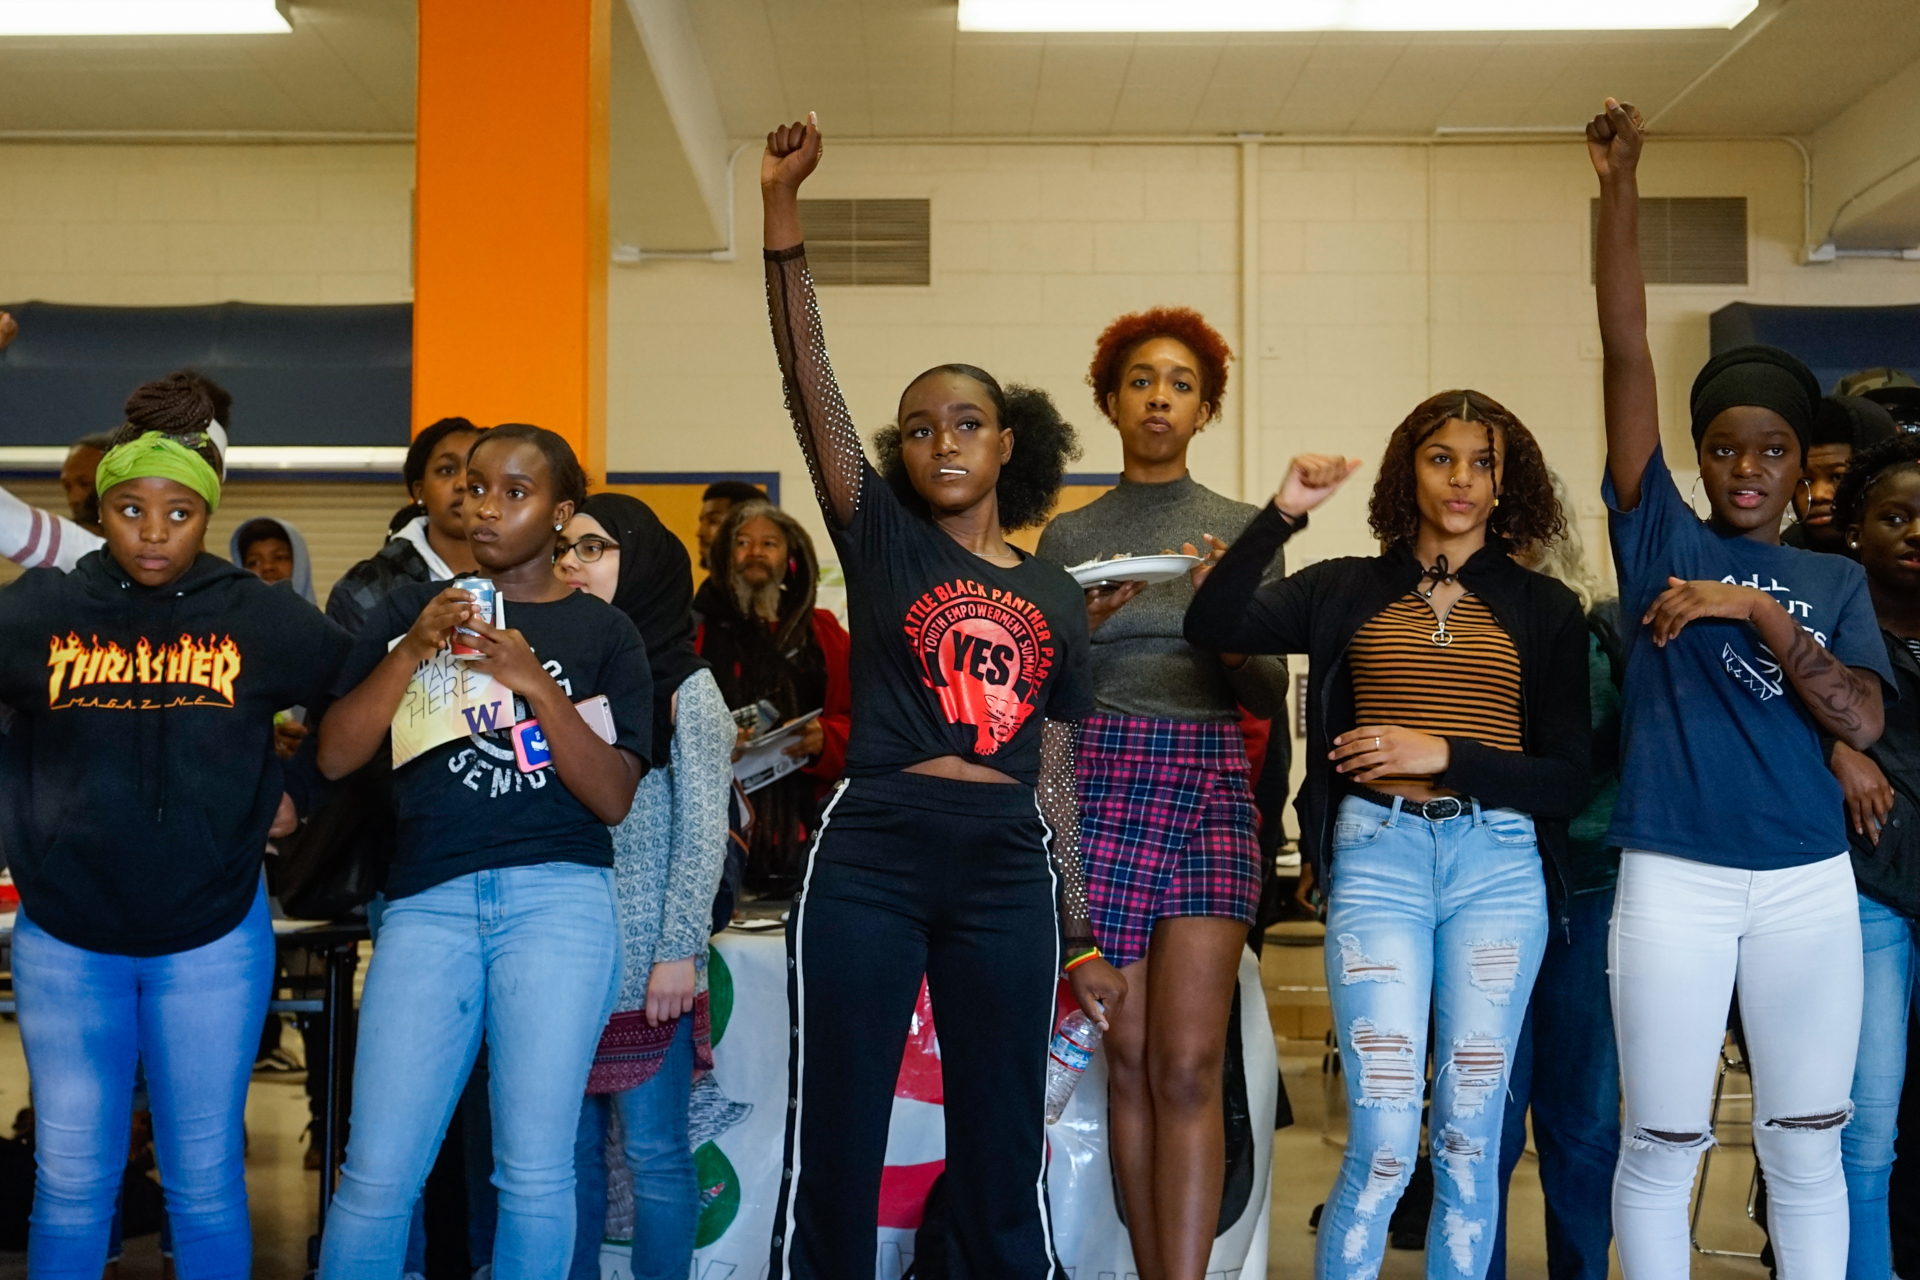 Highschool students attend a Youth Empowerment summit held by Seattle's Black Panther Party